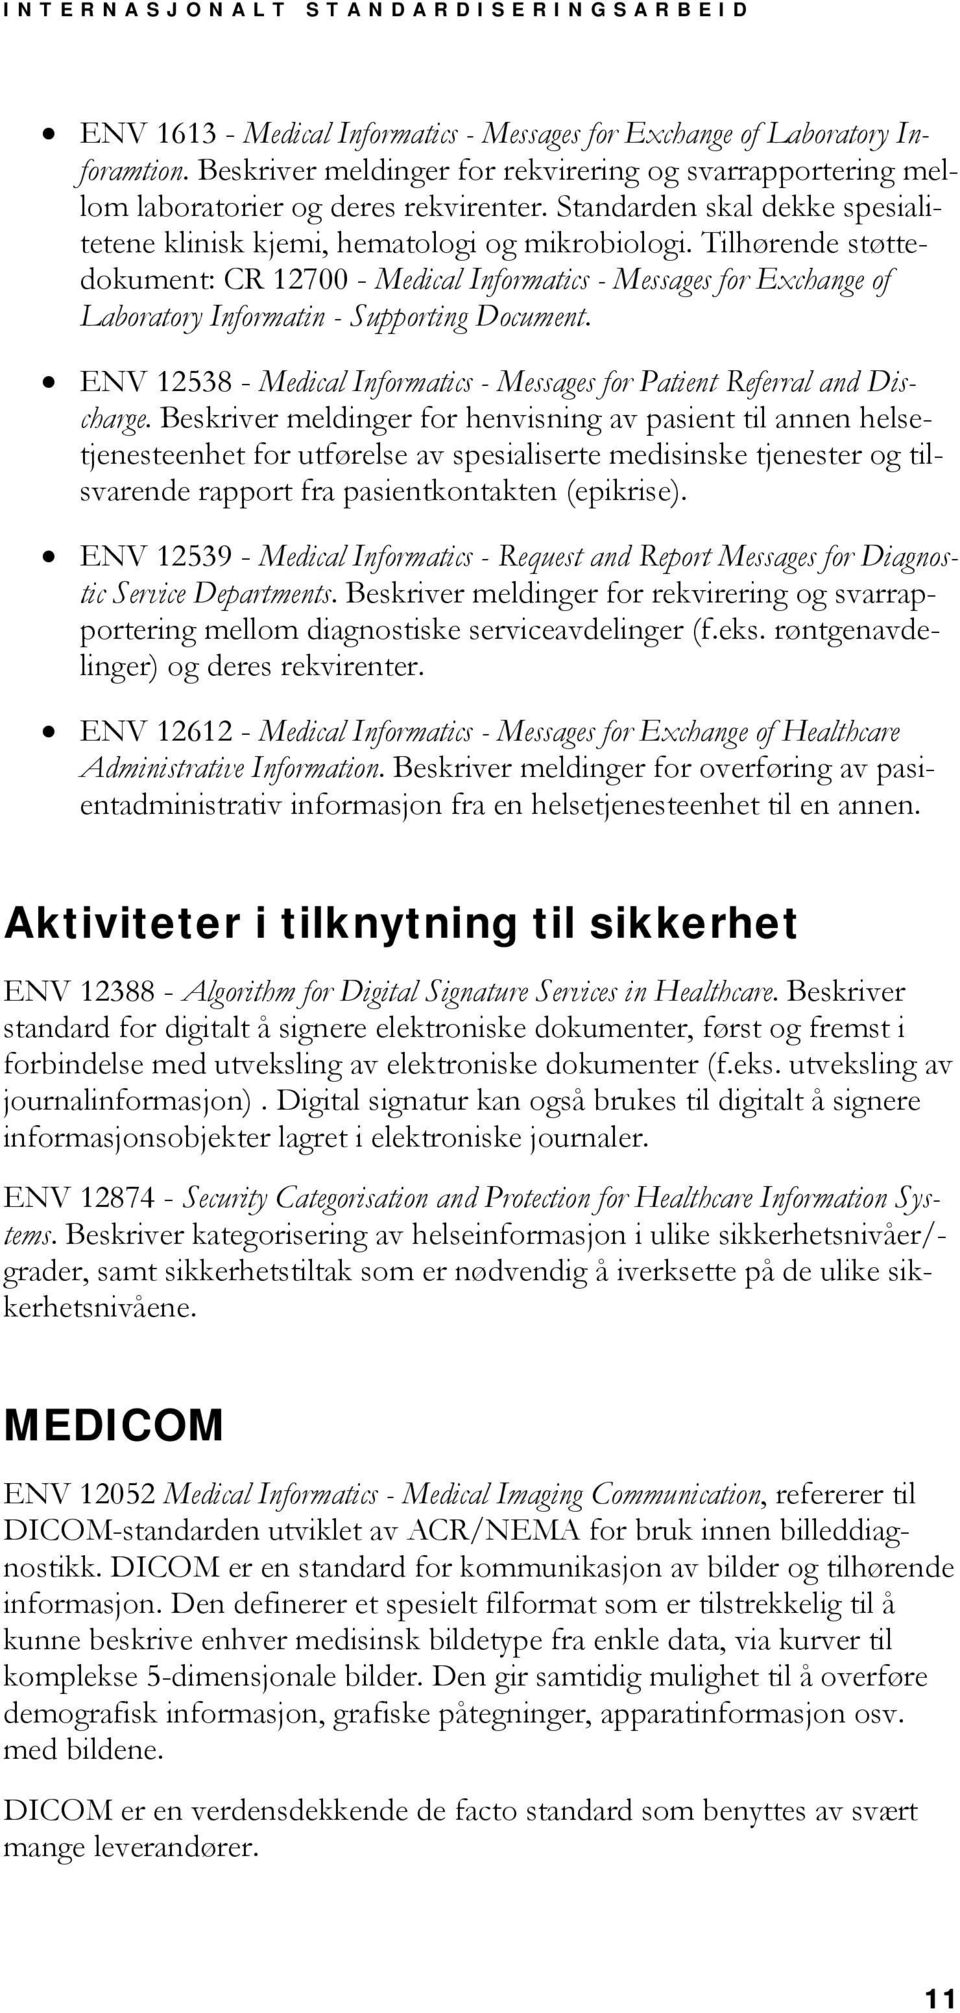 Tilhørende støttedokument: CR 12700 - Medical Informatics - Messages for Exchange of Laboratory Informatin - Supporting Document.